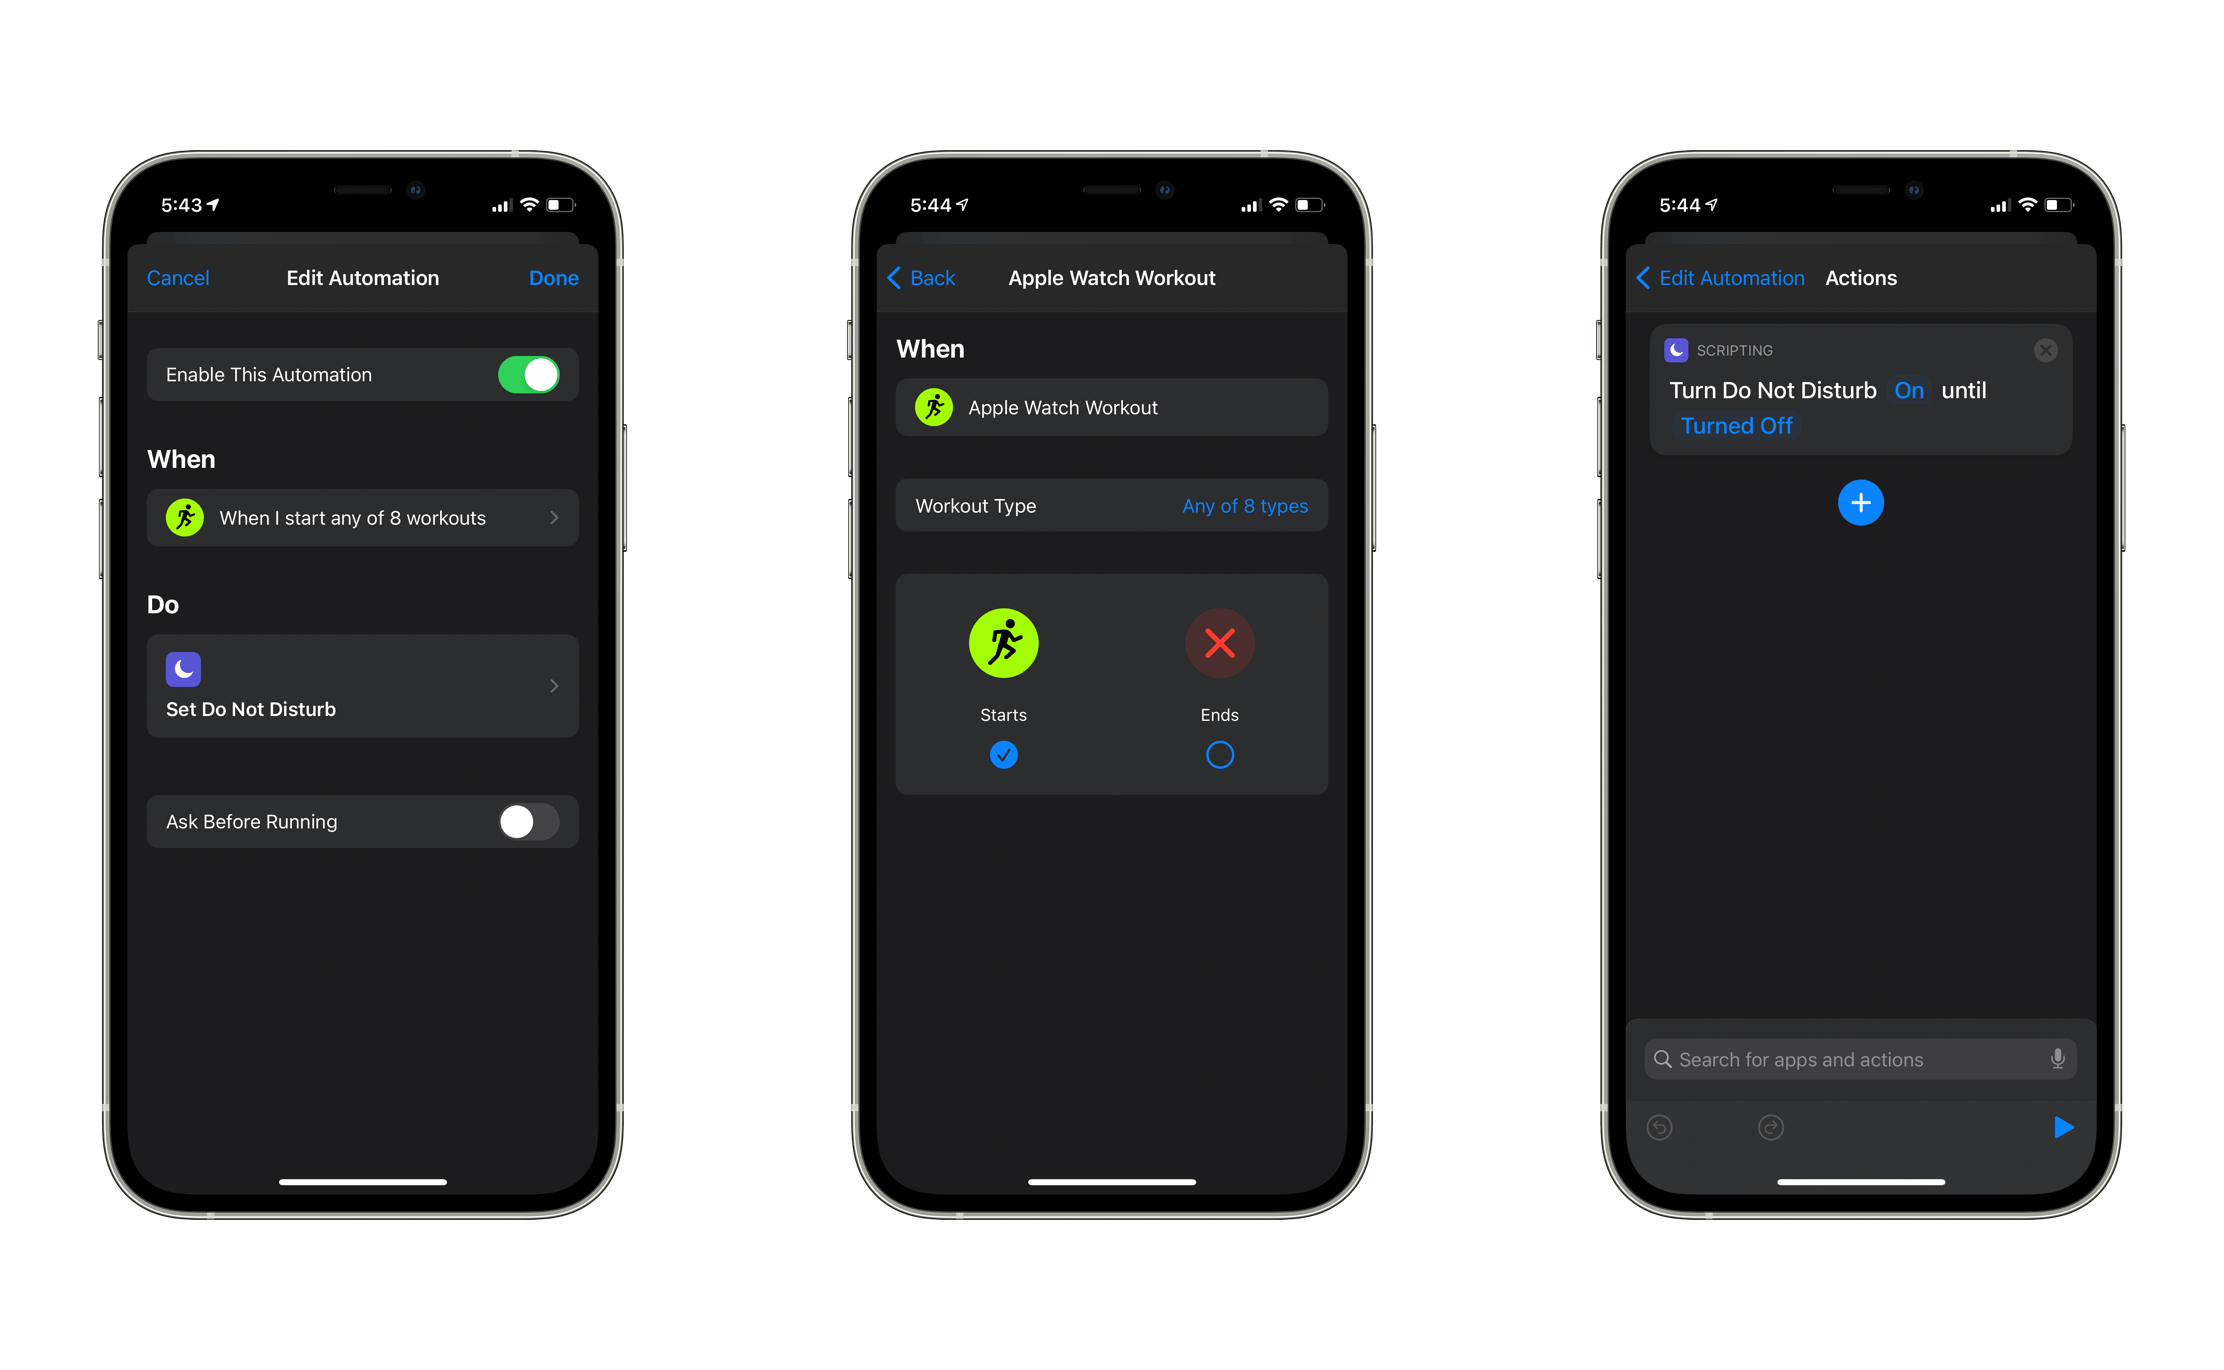 3 iPhones with screenshots of Shortcuts Automation process